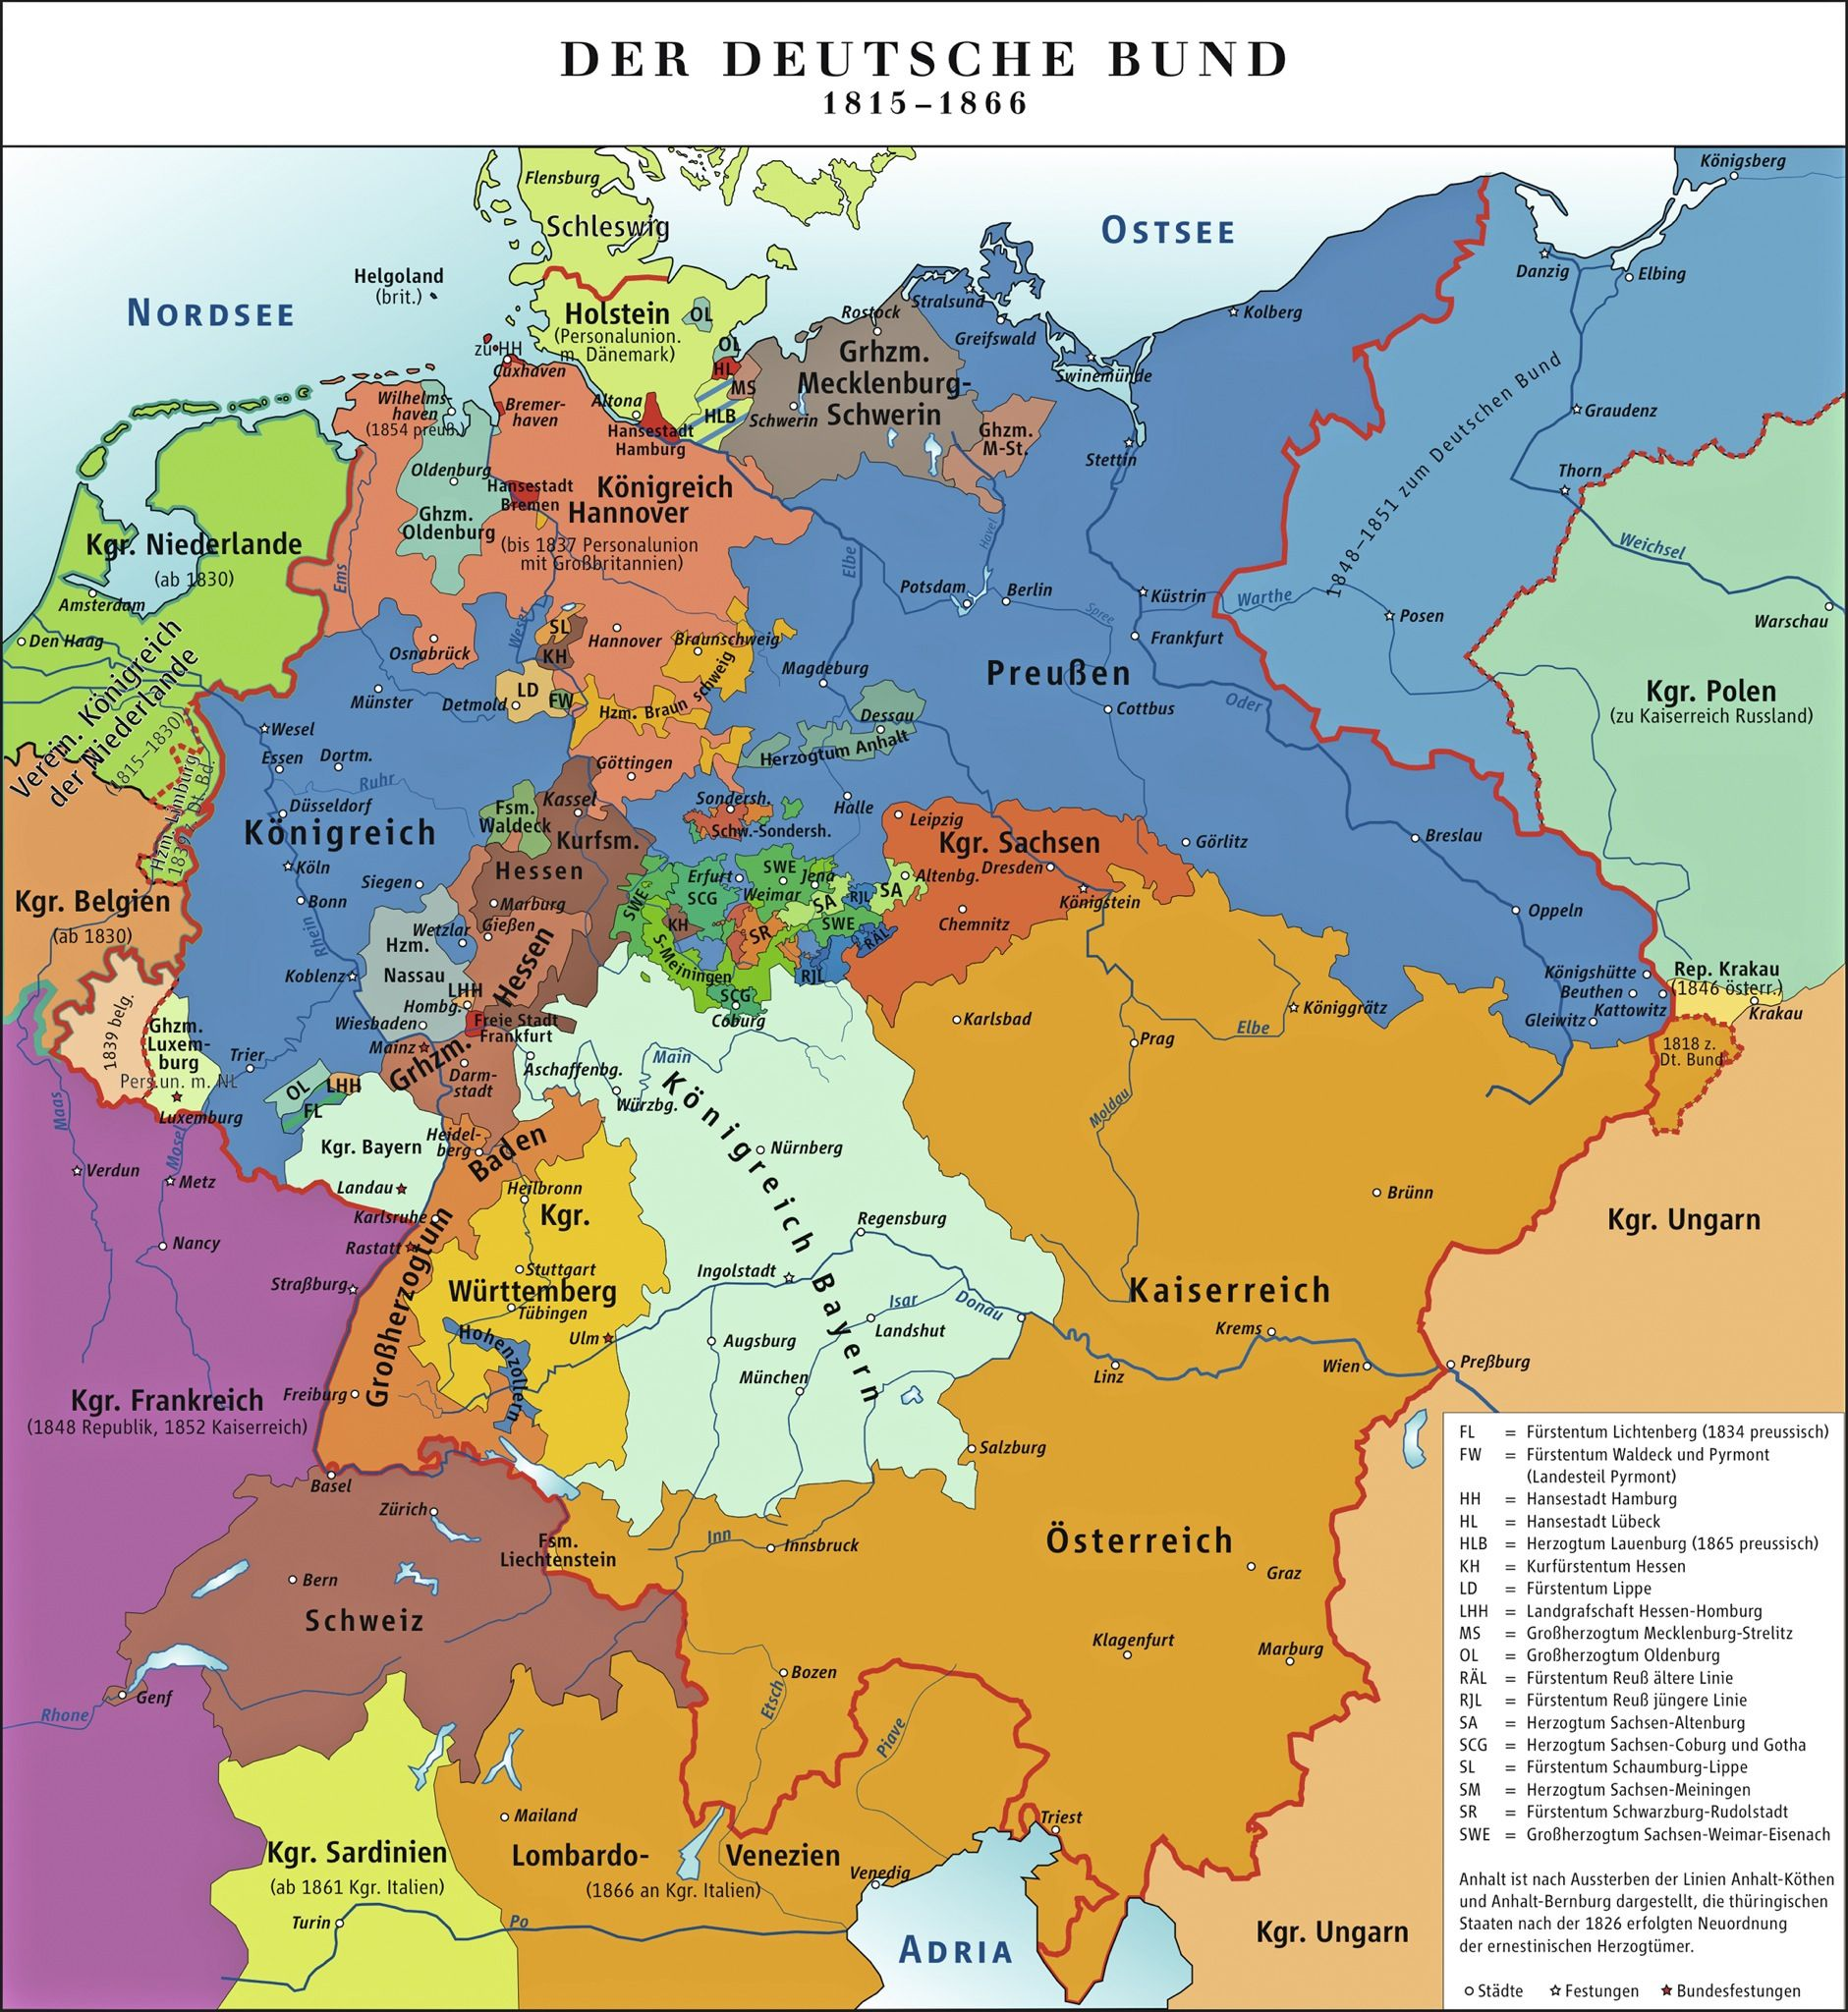 The German Confederation 1815. States, Duchies and fiefdoms ... on usa states map, hungary states map, red states map, un states map, so states map, union states map, best states map, hot states map, german states map,